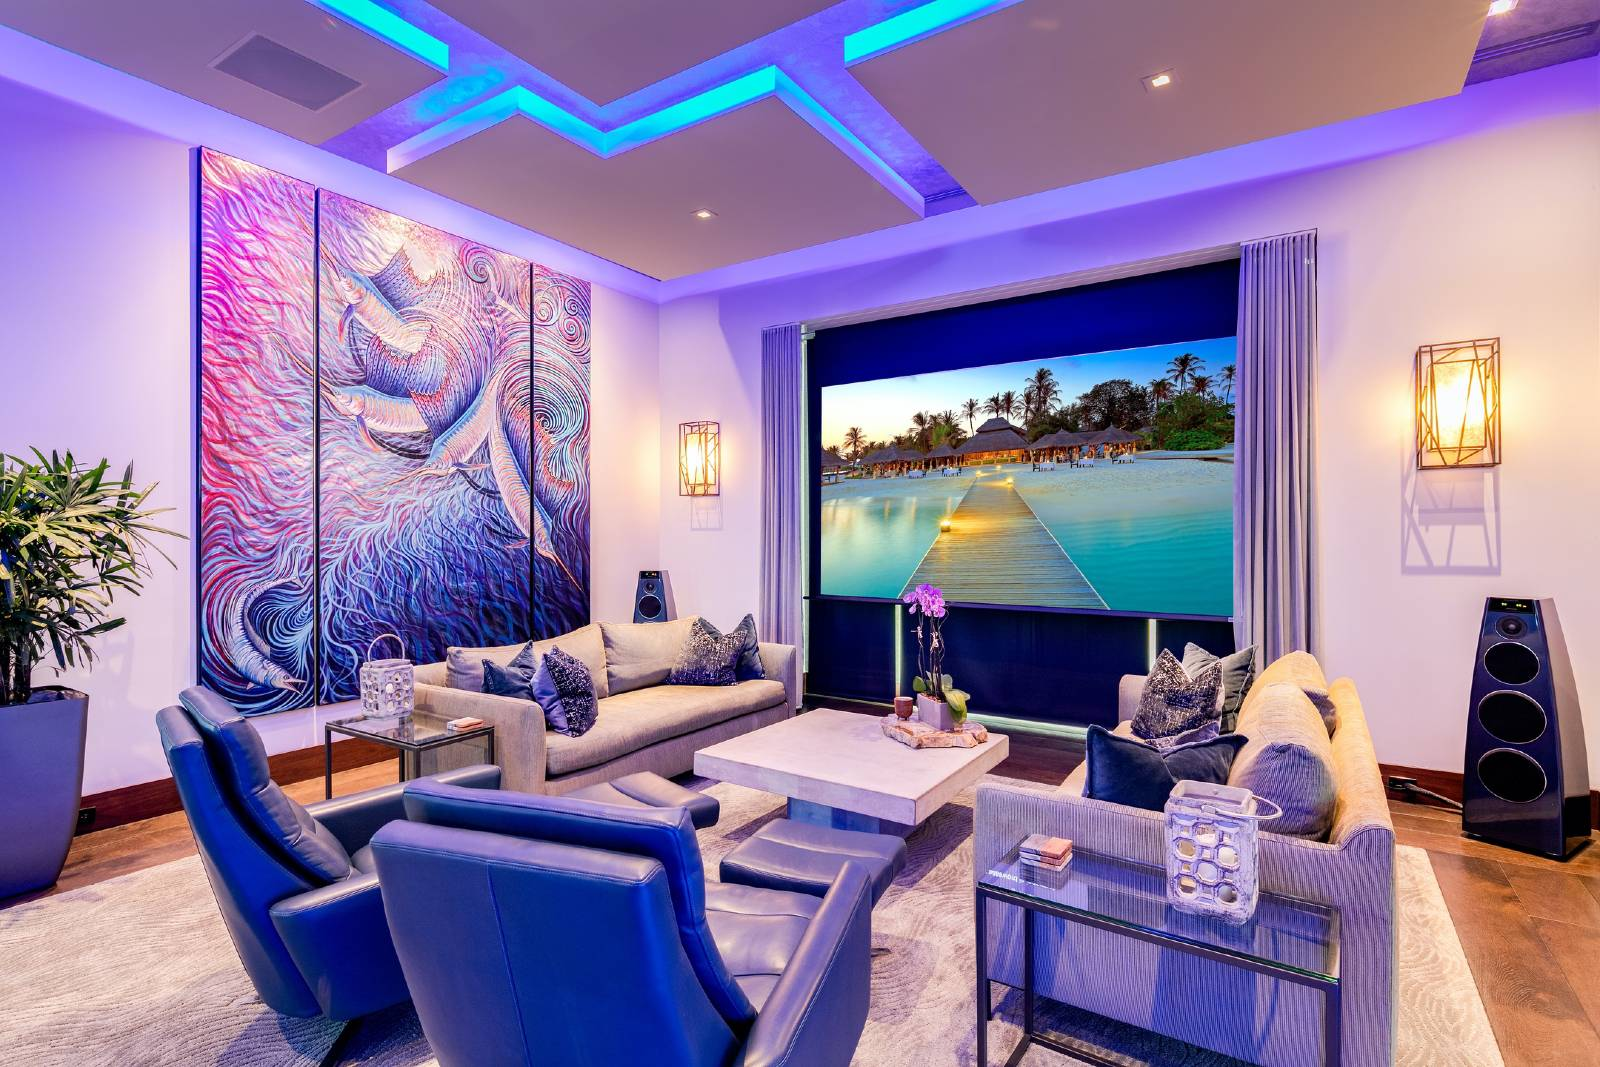 How will home technology evolve in 2021?